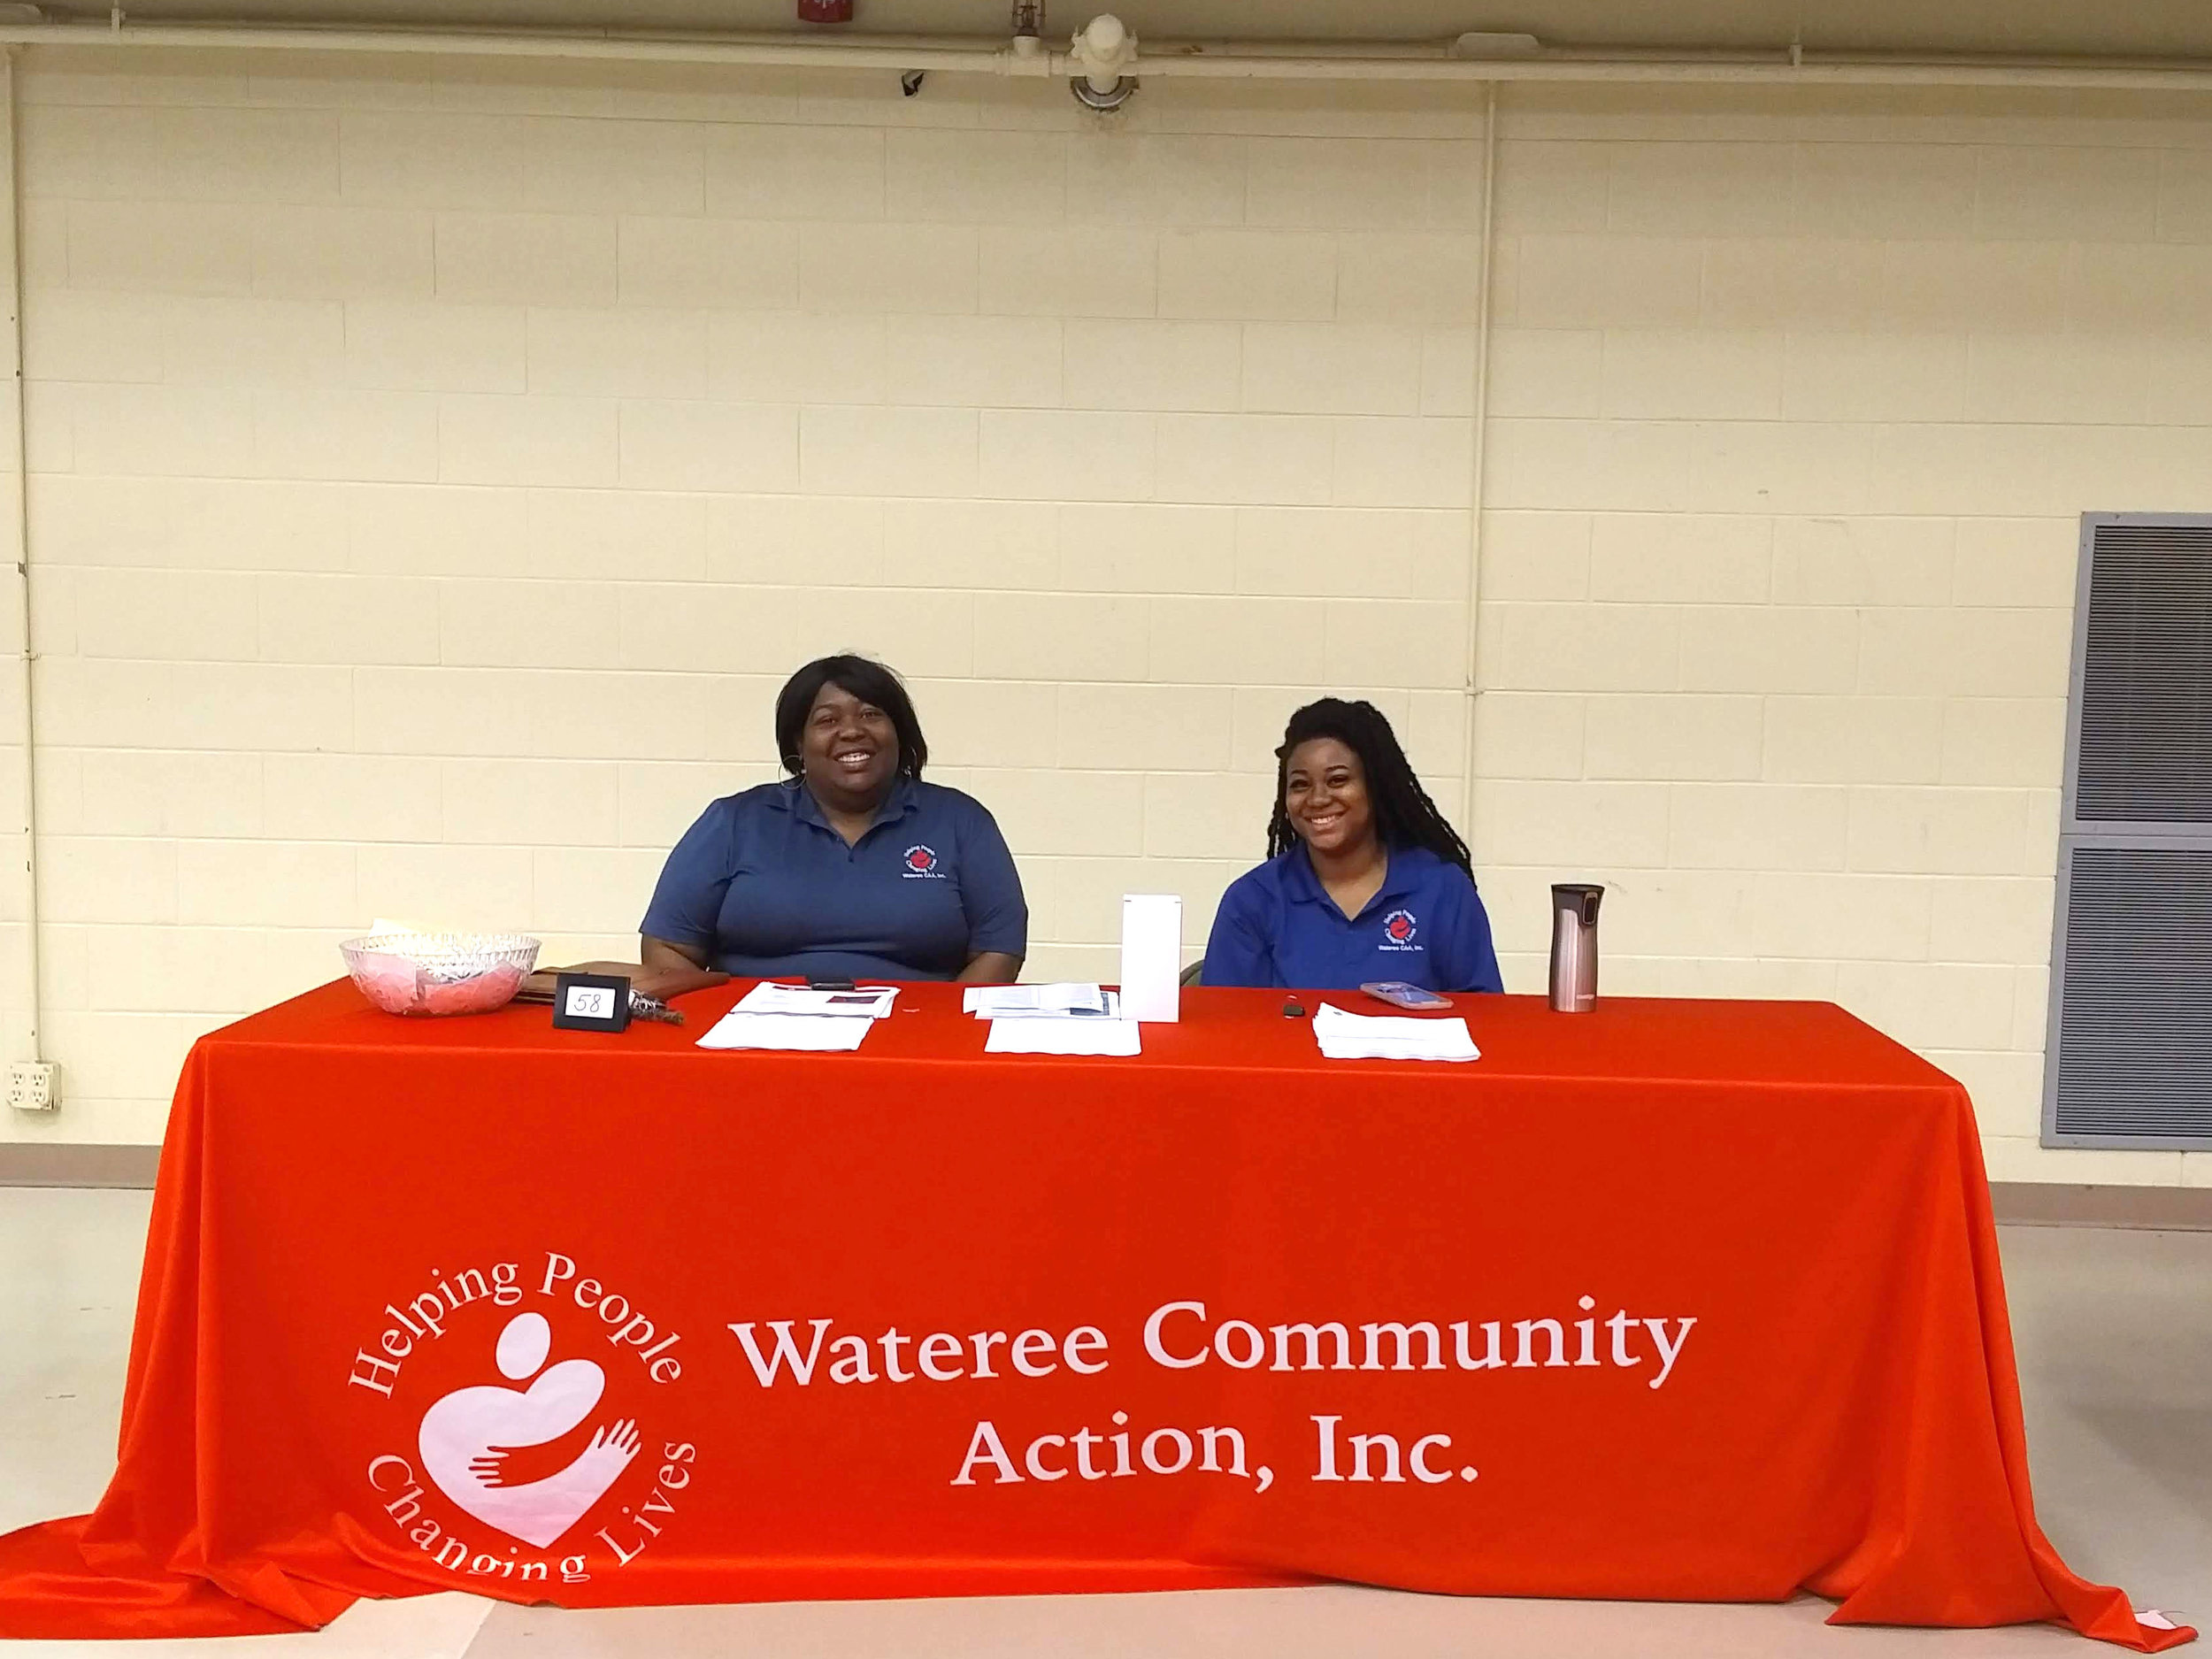 Wateree Community Action.jpg